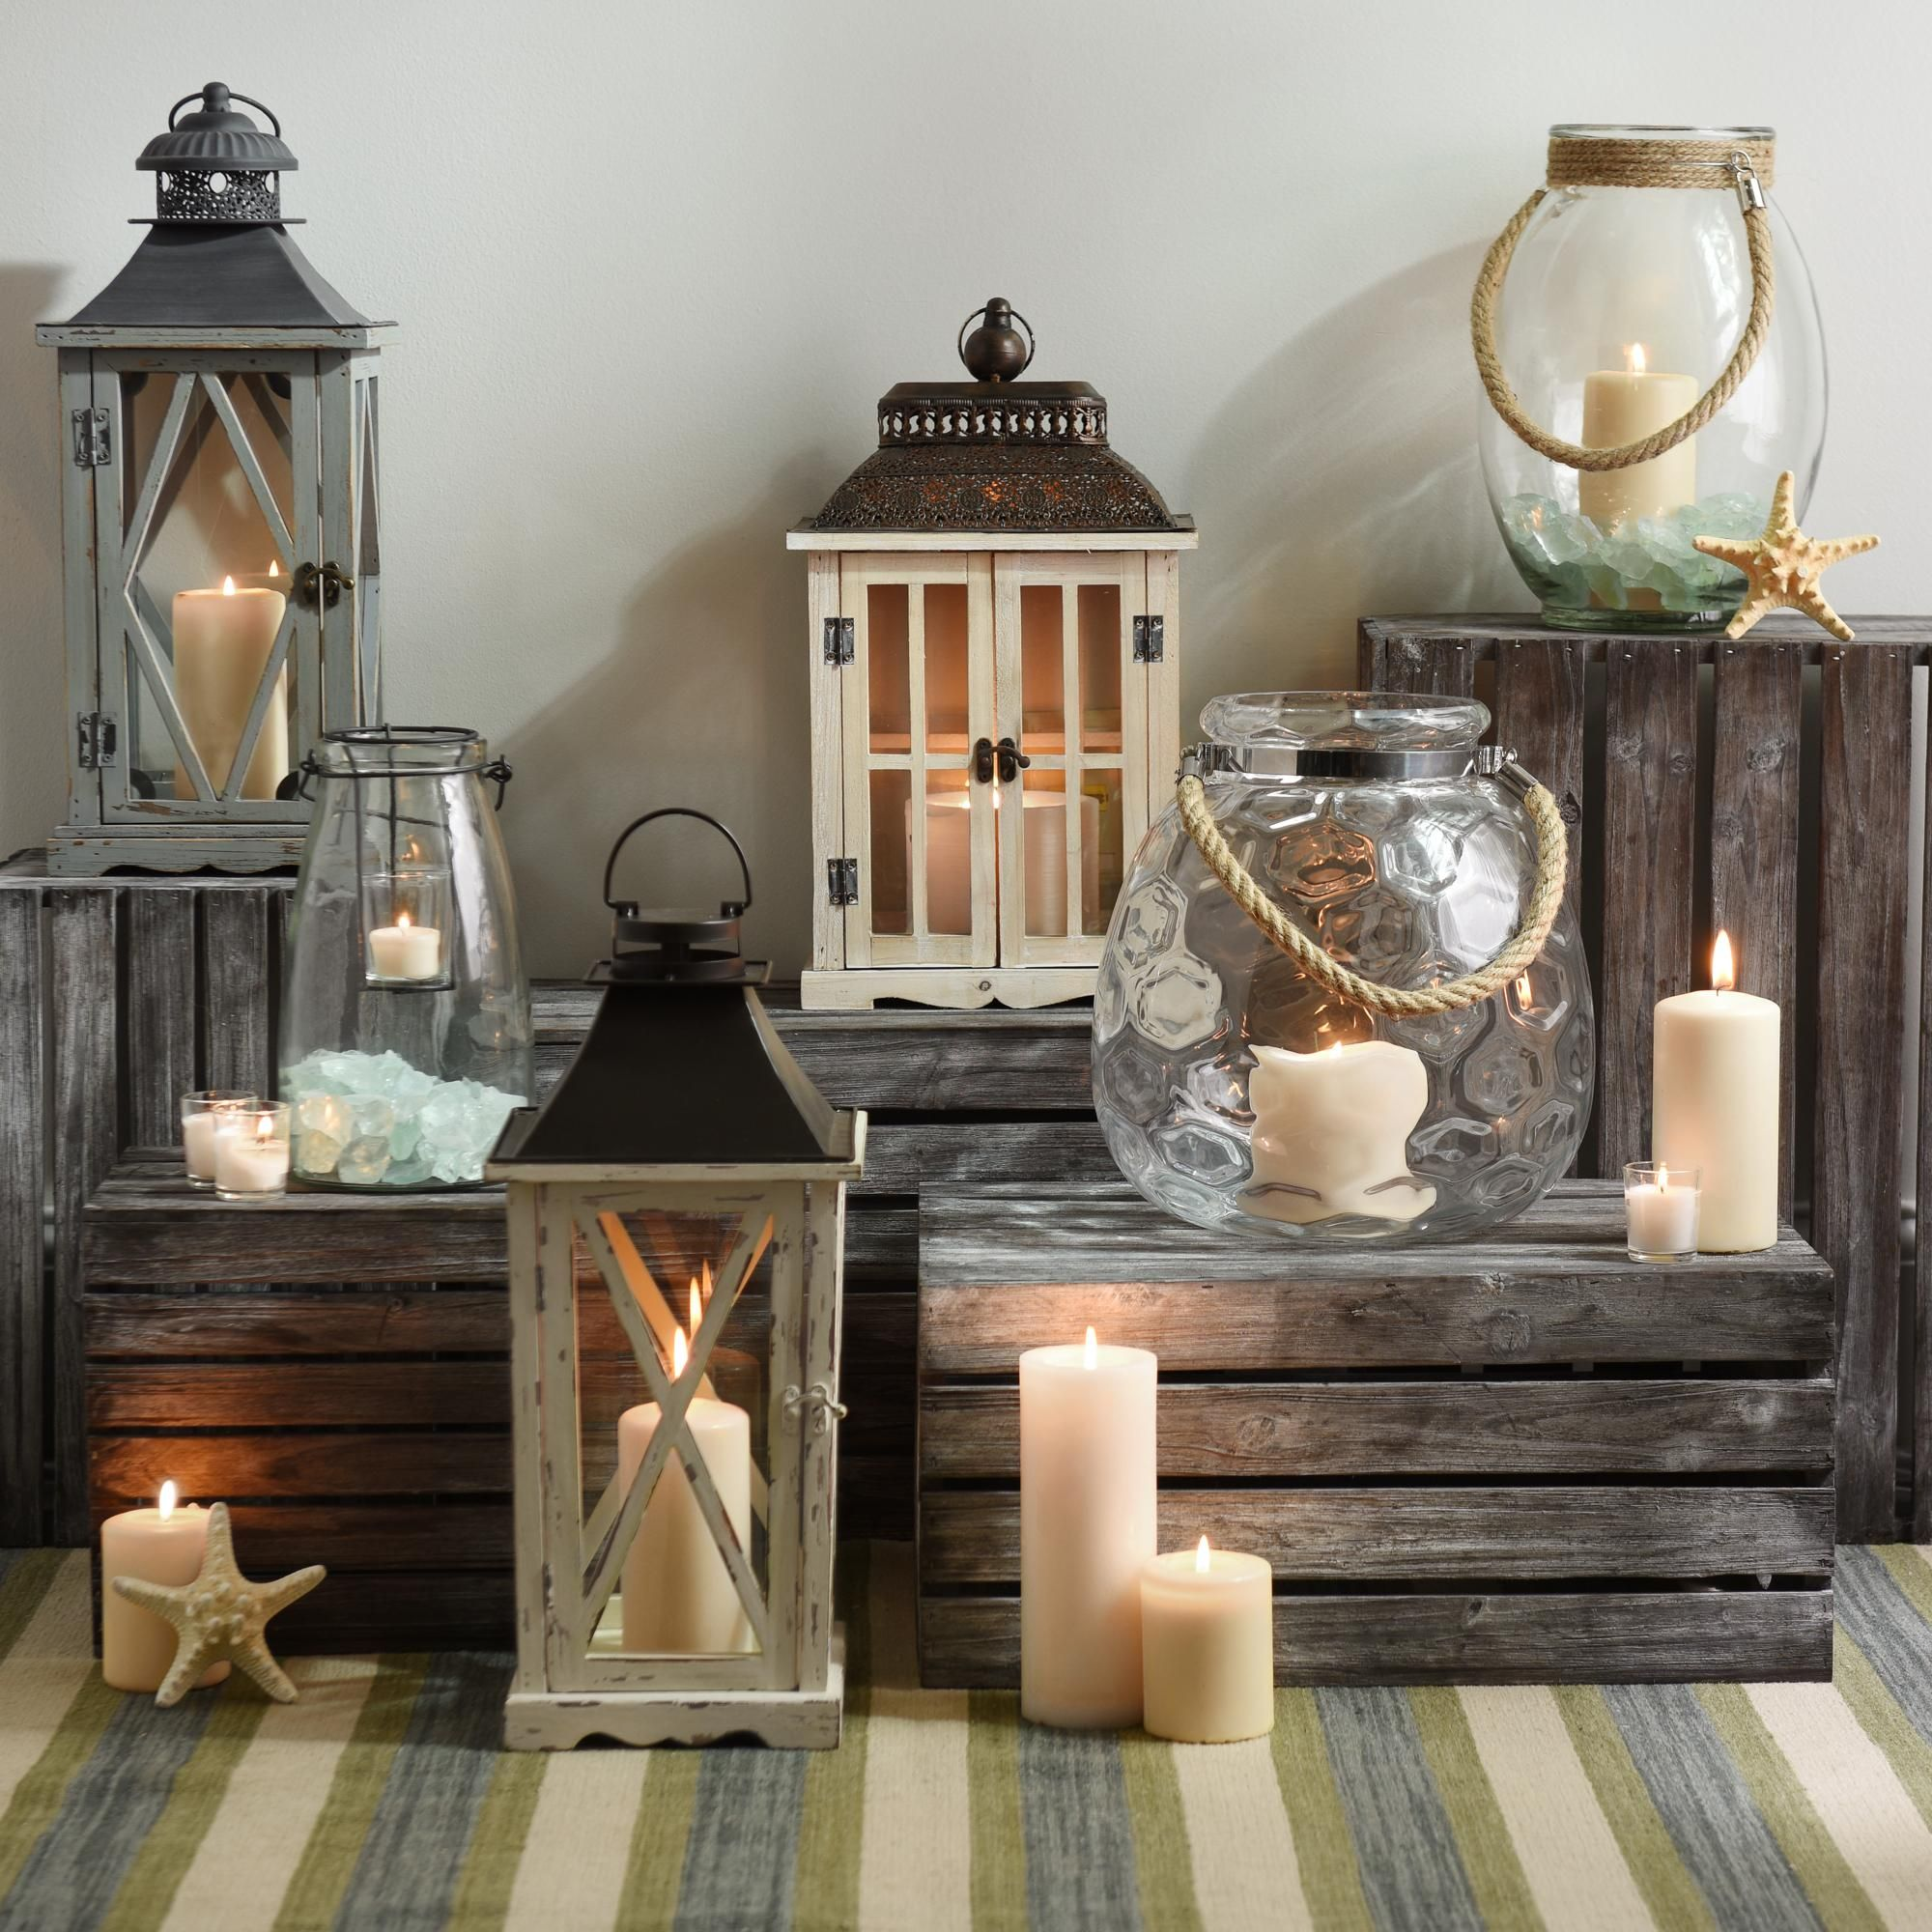 Add whimsy and magic with lanterns from kirkland s all